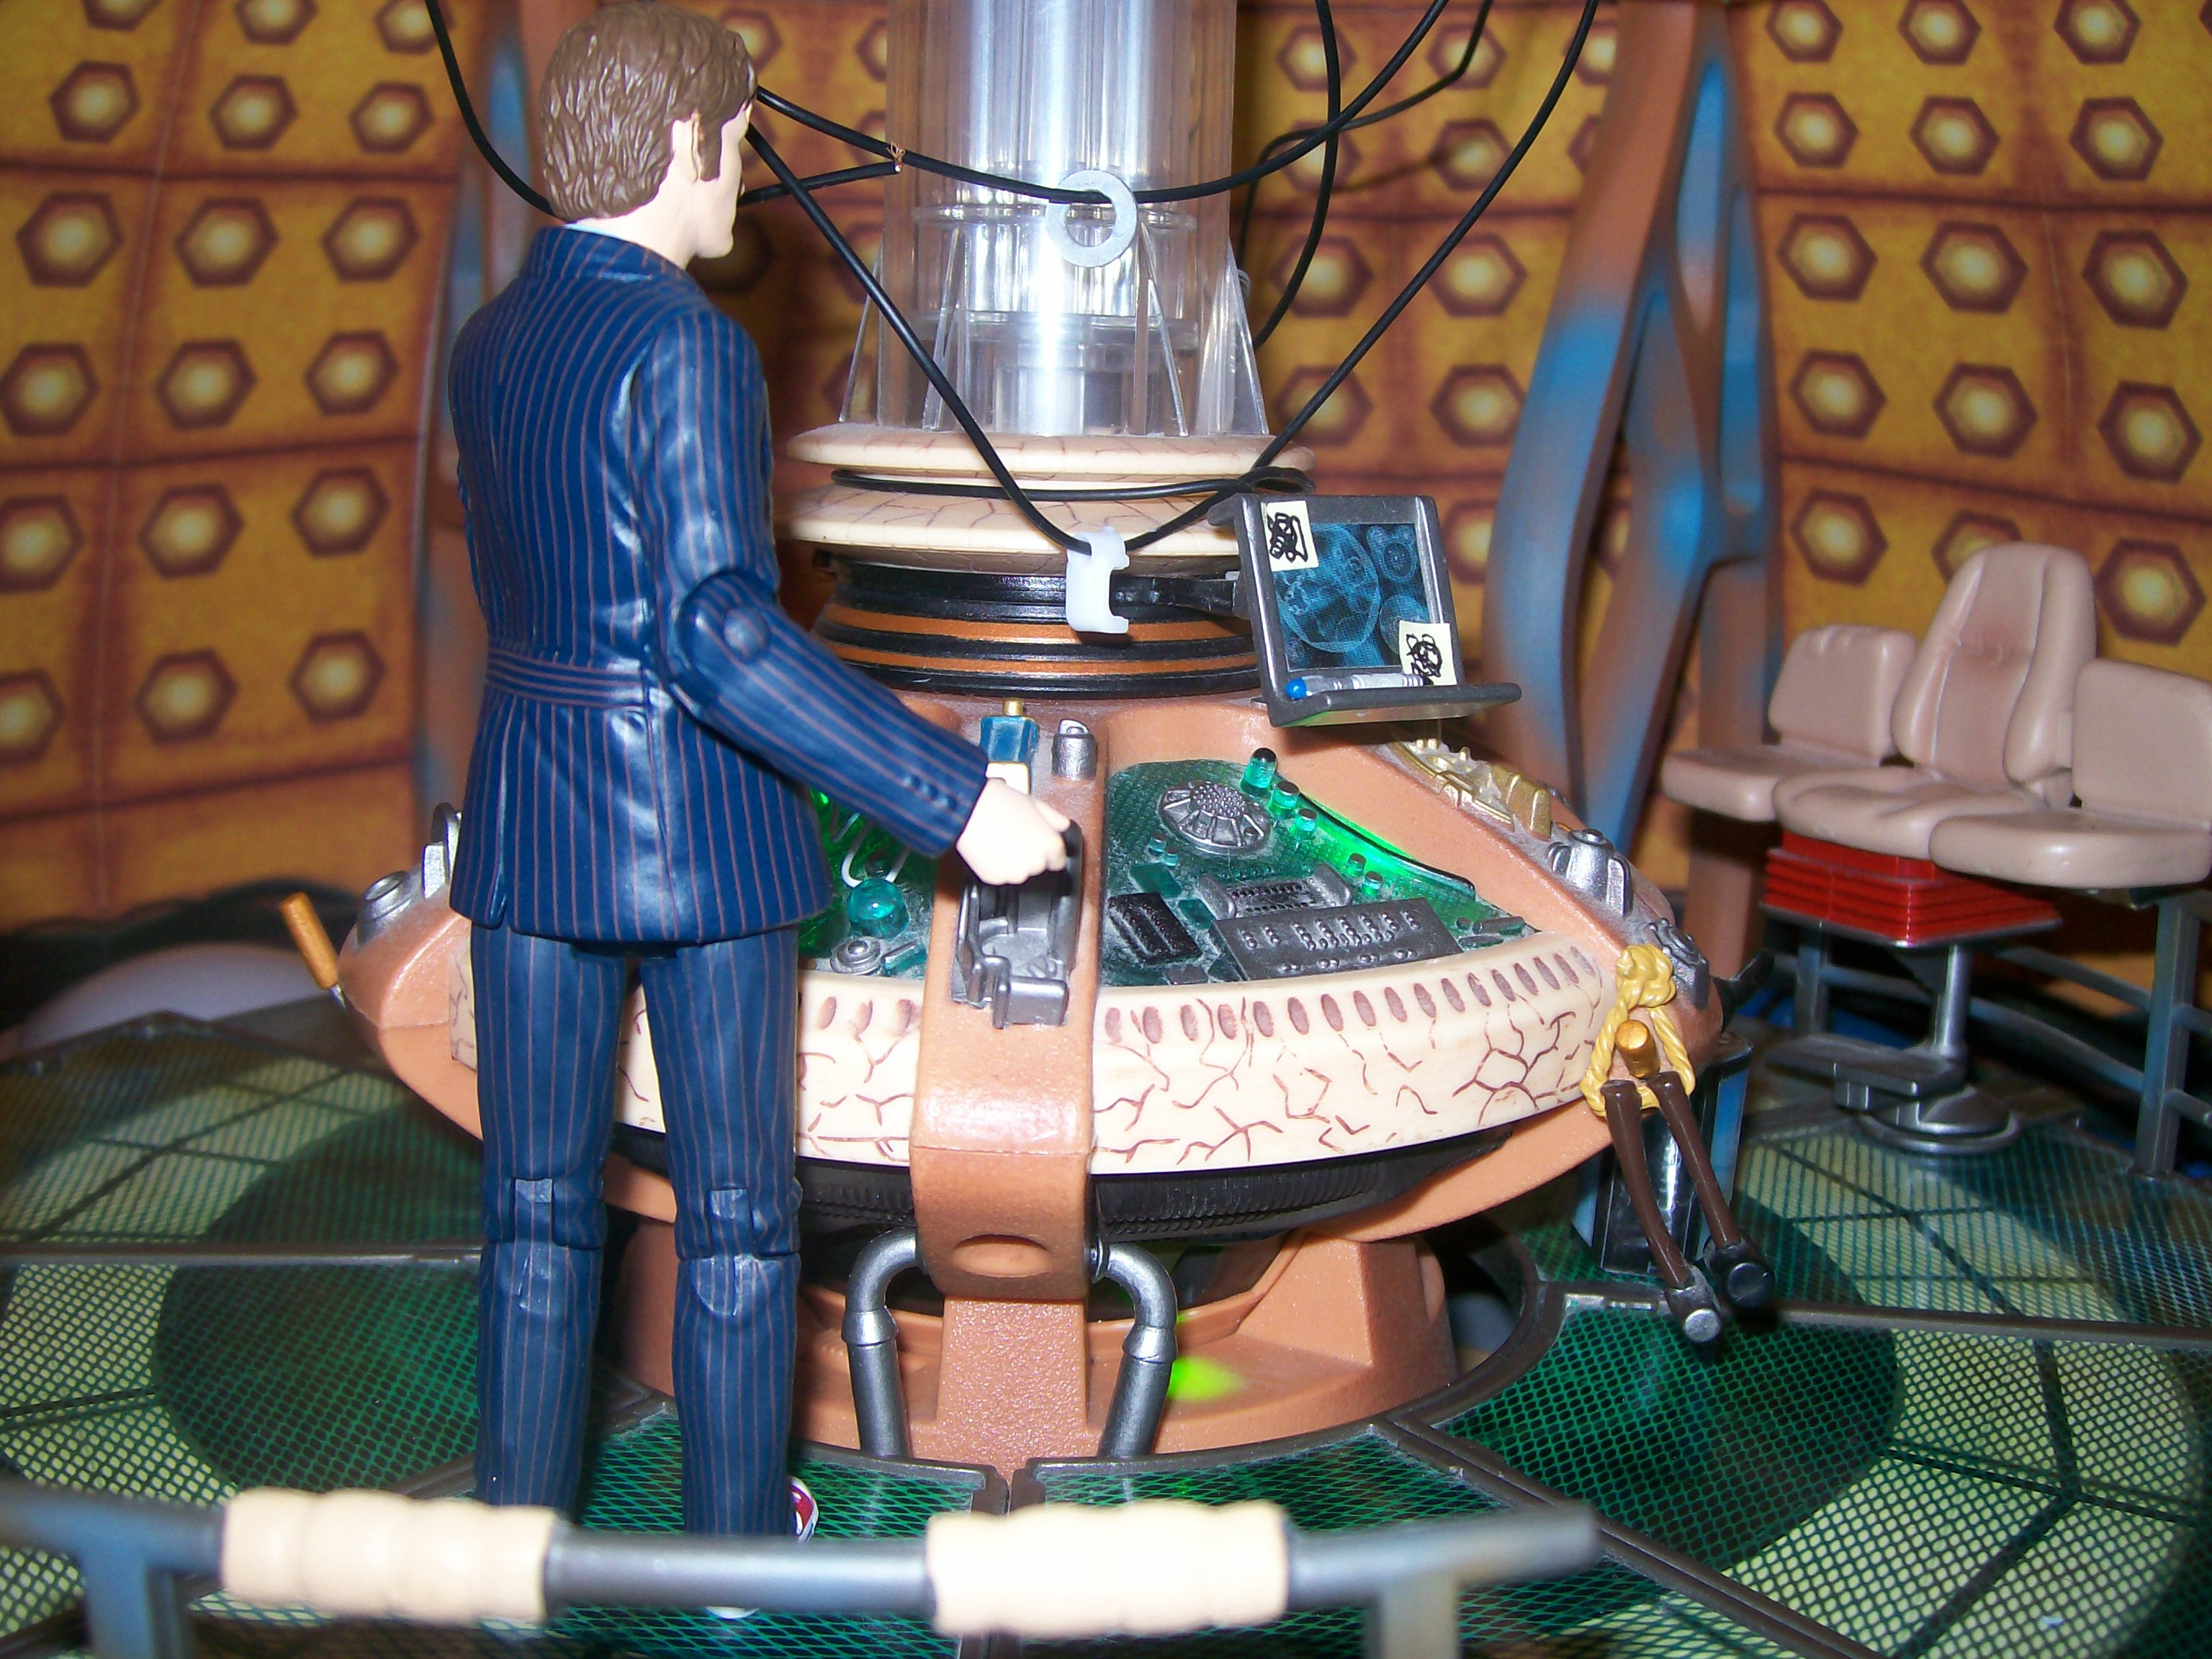 Phillips Screwdriver Tip Custom Doctor Who Toys